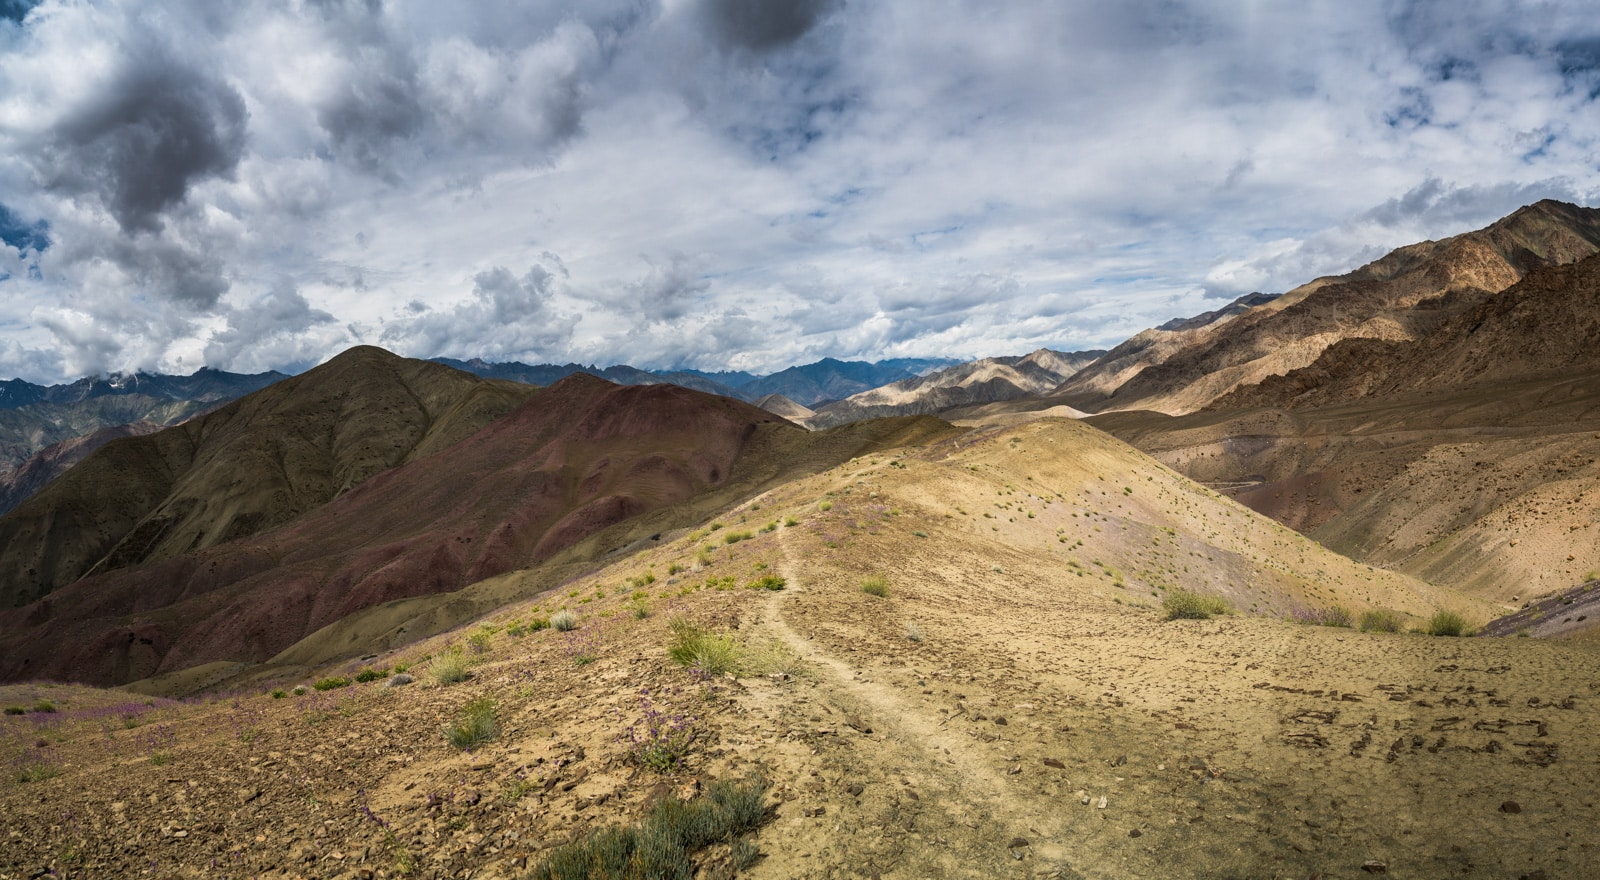 Short 3-day itinerary and guide to the Sham Valley trek in Ladakh, India - Panorama view from the top of the last mountain pass - Lost With Purpose travel blog